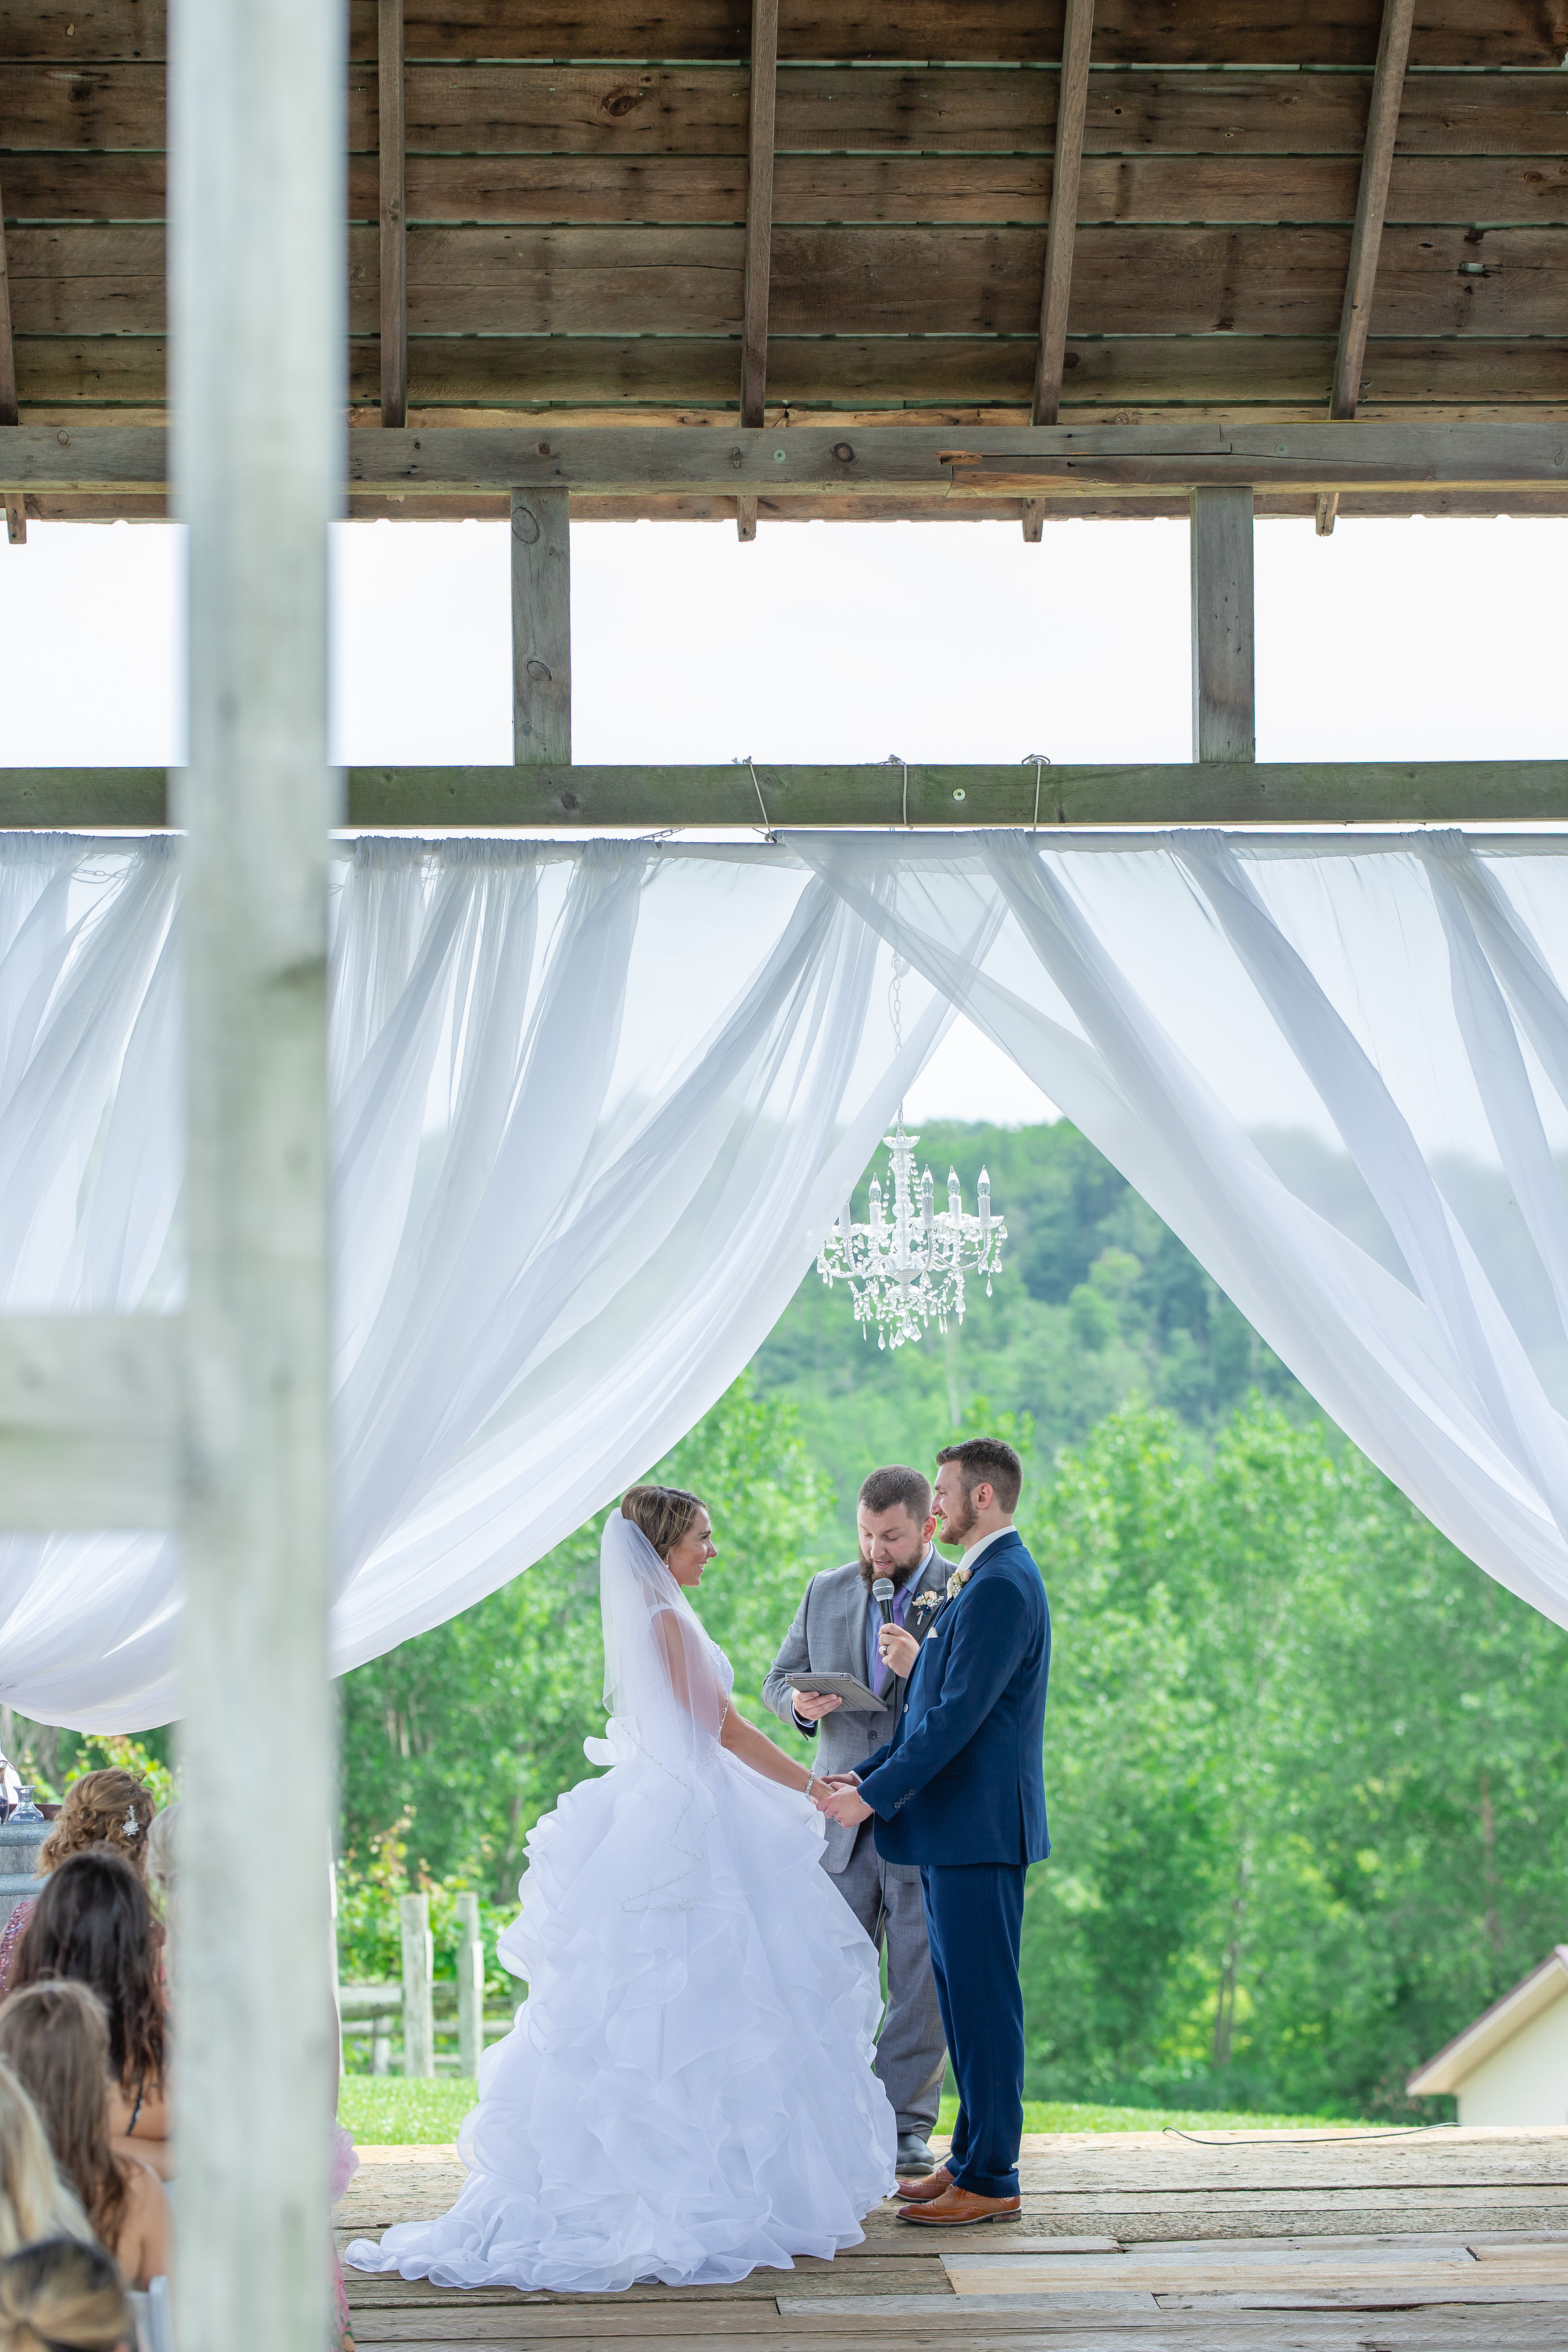 Bride and groom at wedding ceremony in a wooden barn in Cannon Falls, MN